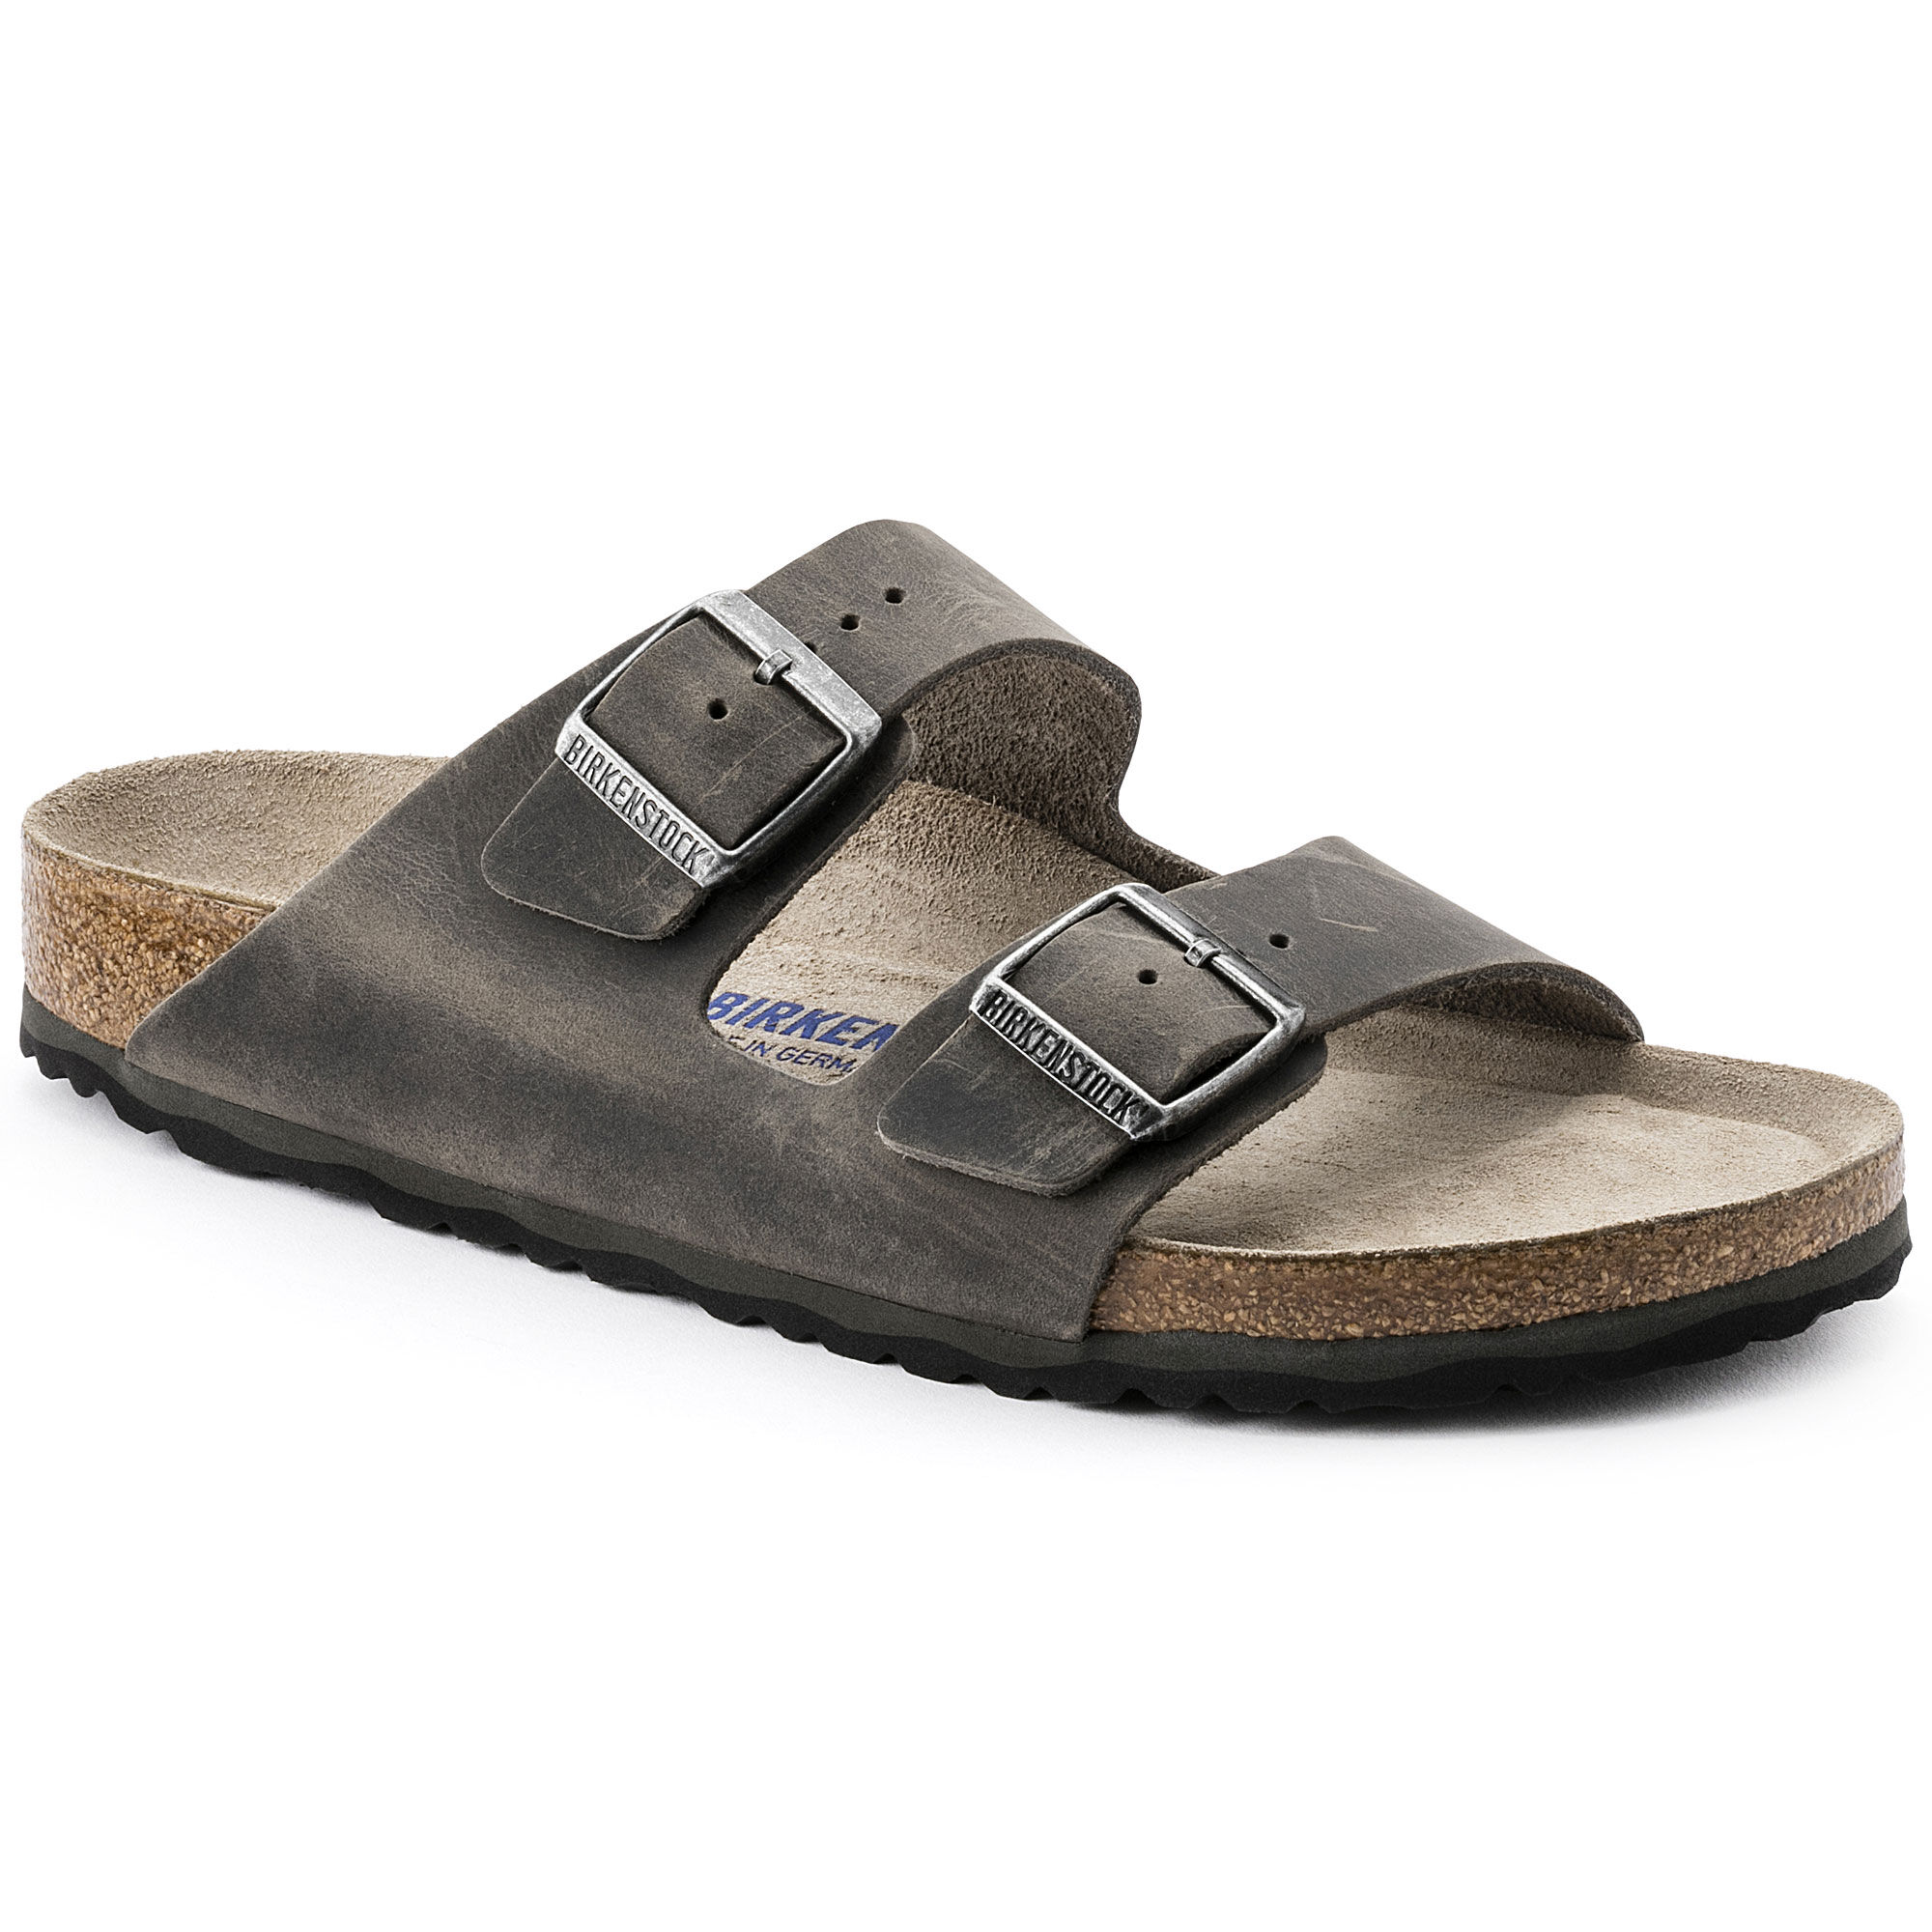 1337076e84 Birkenstock Arizona SFB Arctic Old Iron - spain-real-estate.org